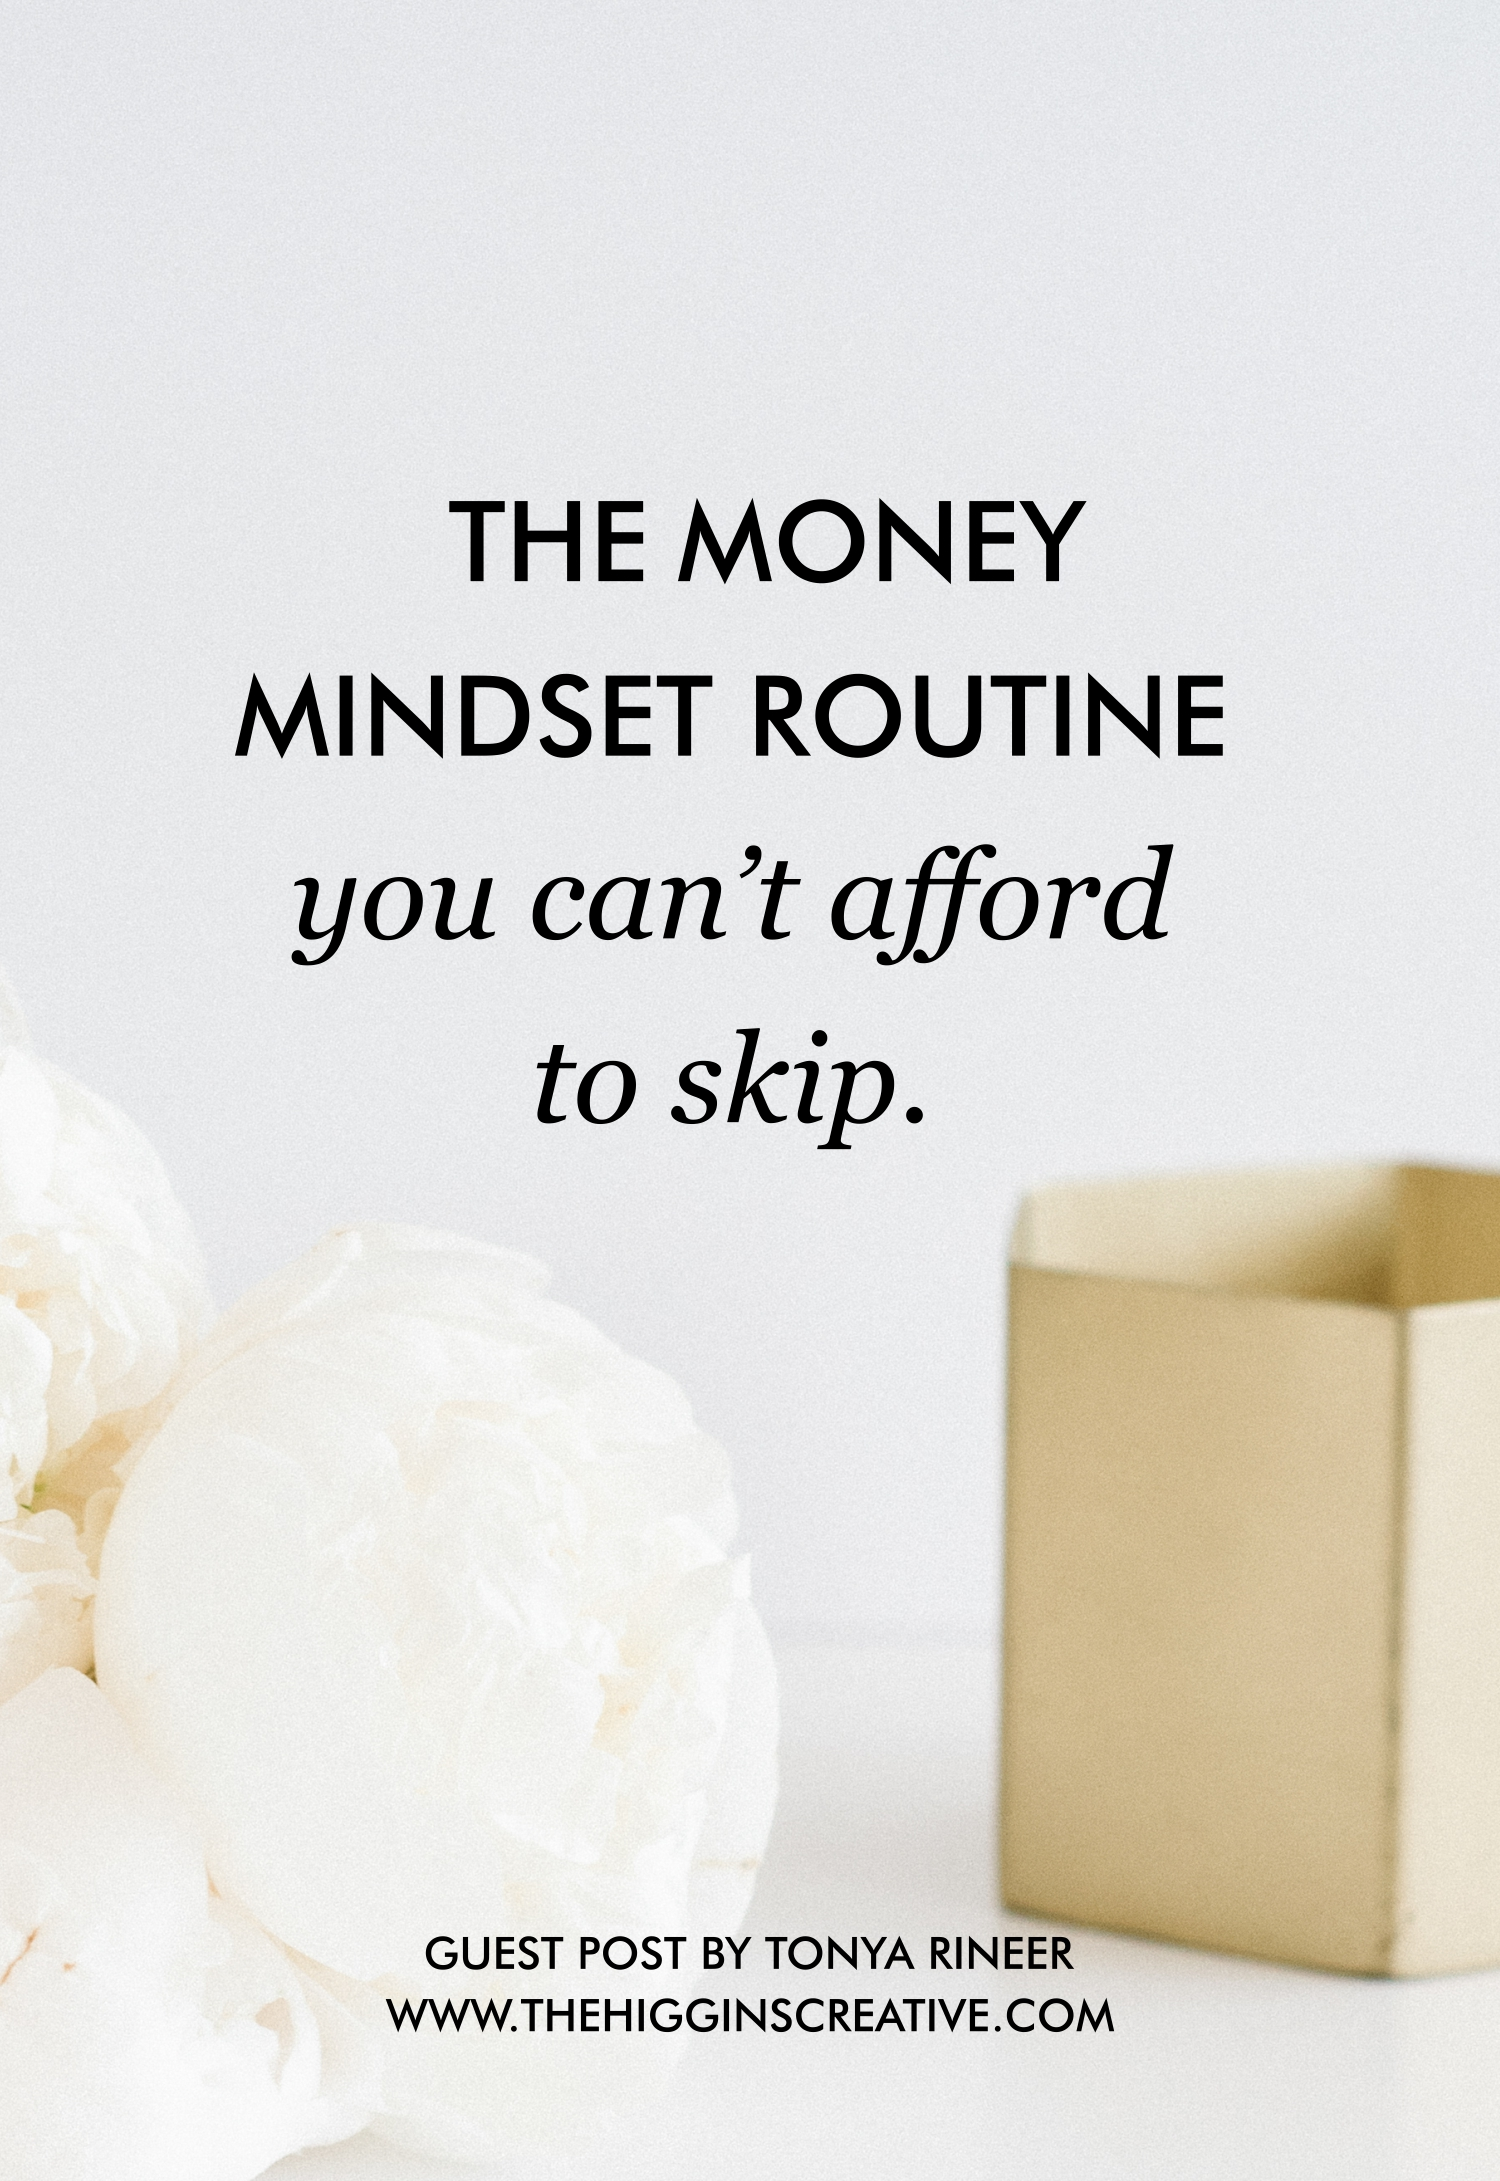 The Money Mindset Routine You Can't Afford to Skip by Tonya Rineer (Money Mindset Coach) on The Higgins Creative blog for entrepreneurs, creatives, makers and artists.